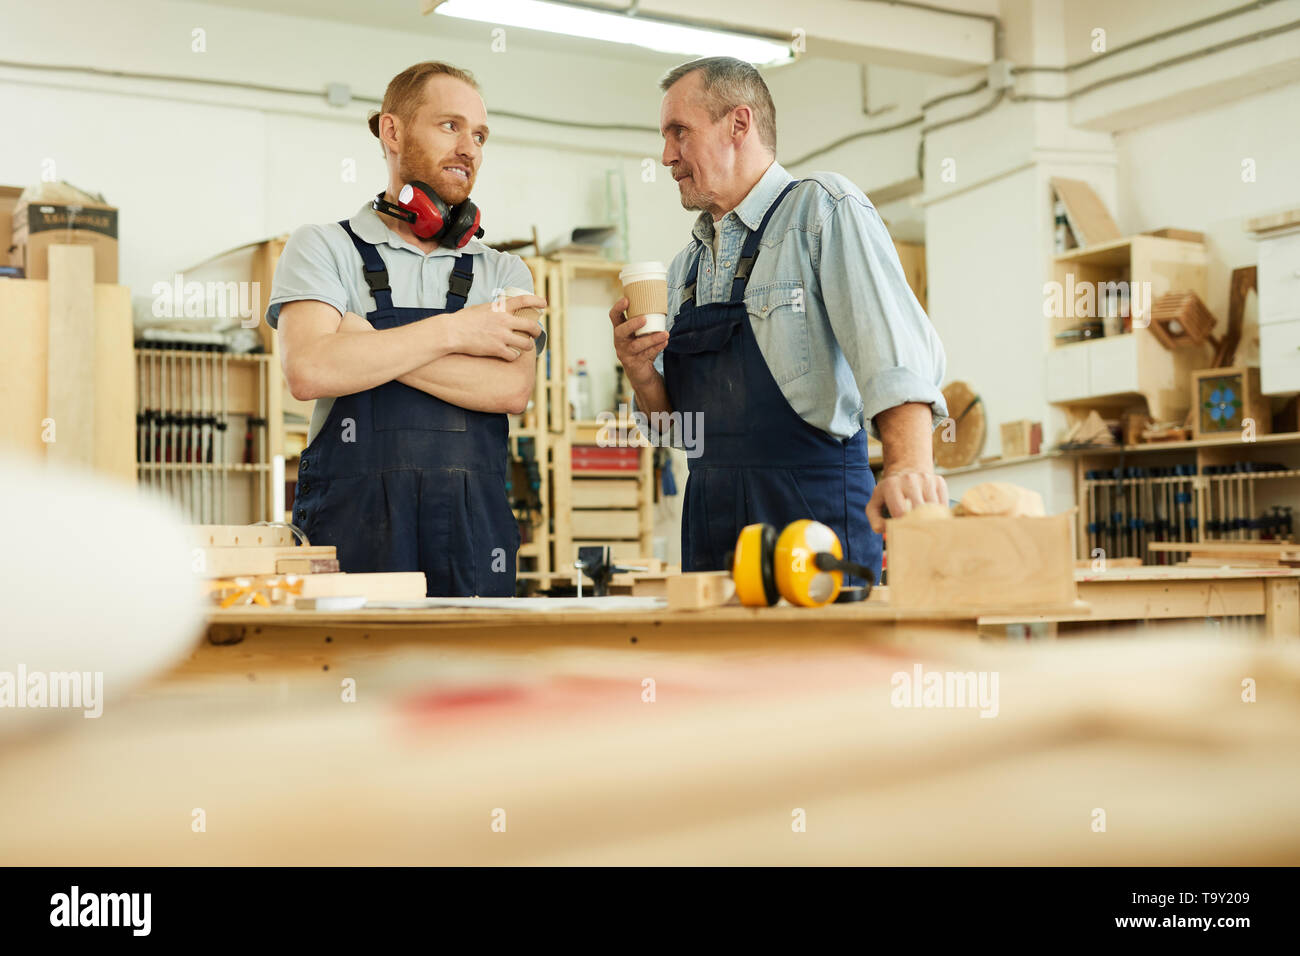 Waist up portrait of two carpenters drinking coffee during break standing in joinery workshop, copy space - Stock Image